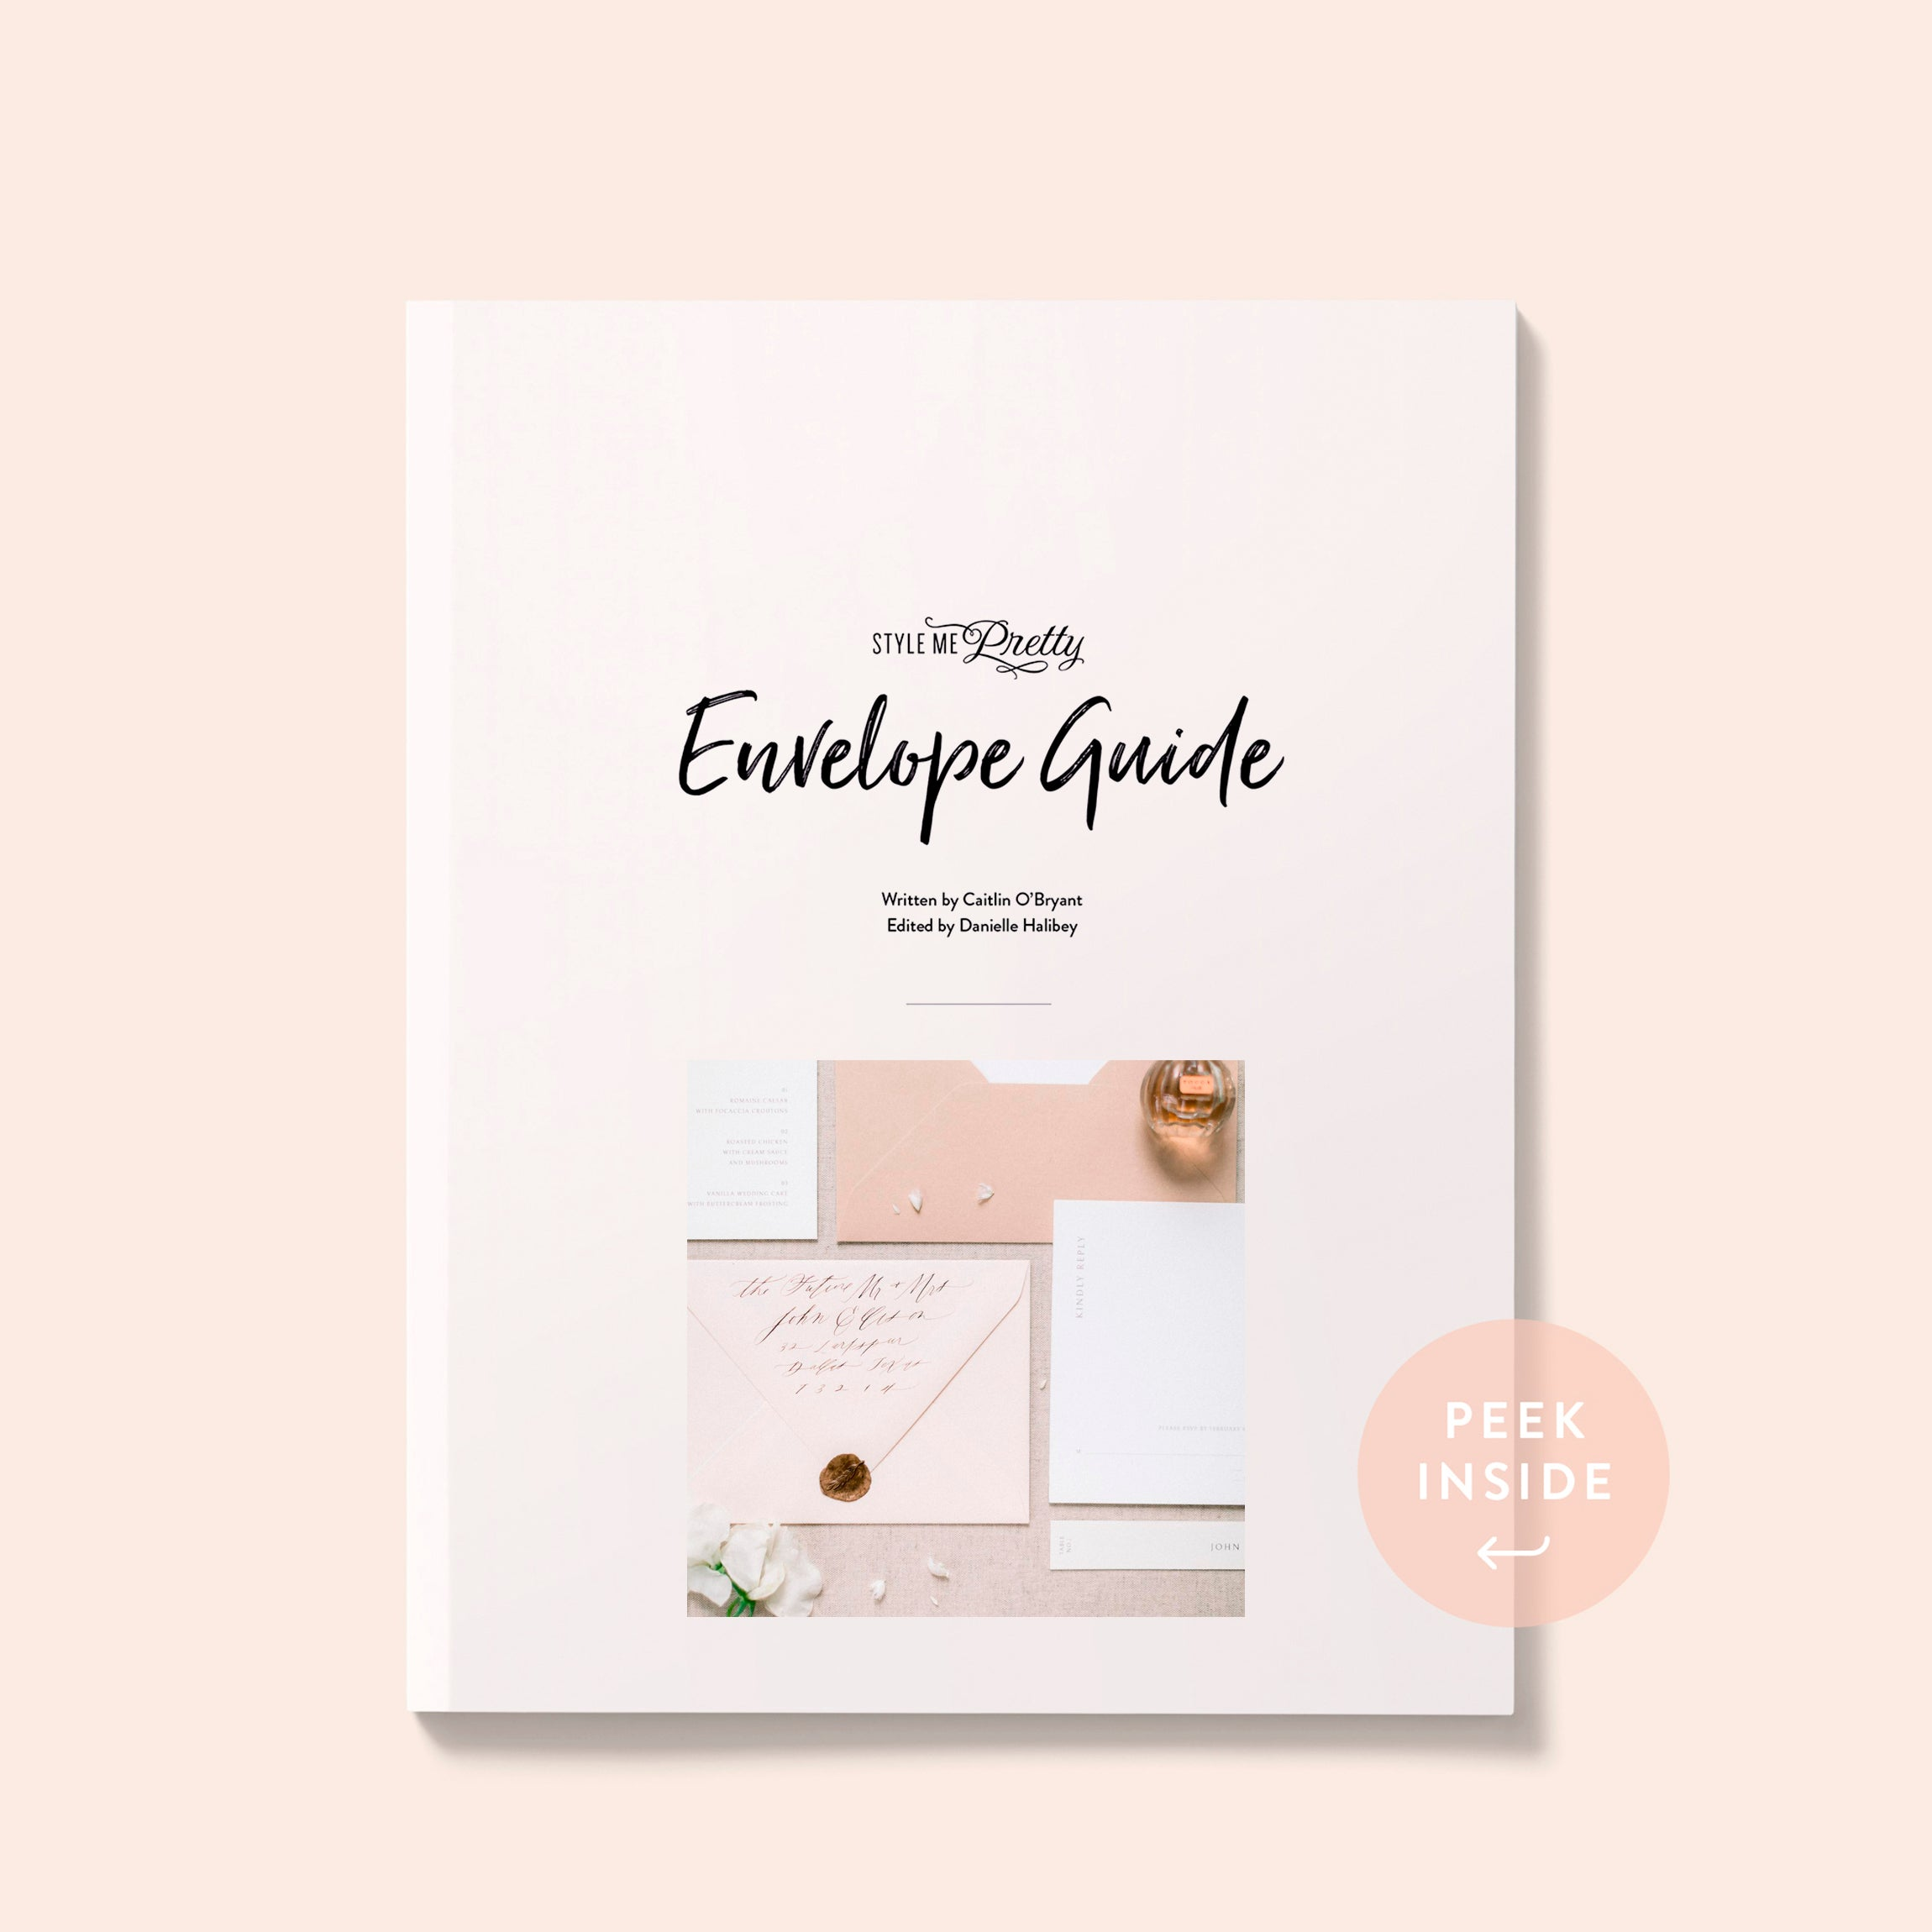 Envelope Guide